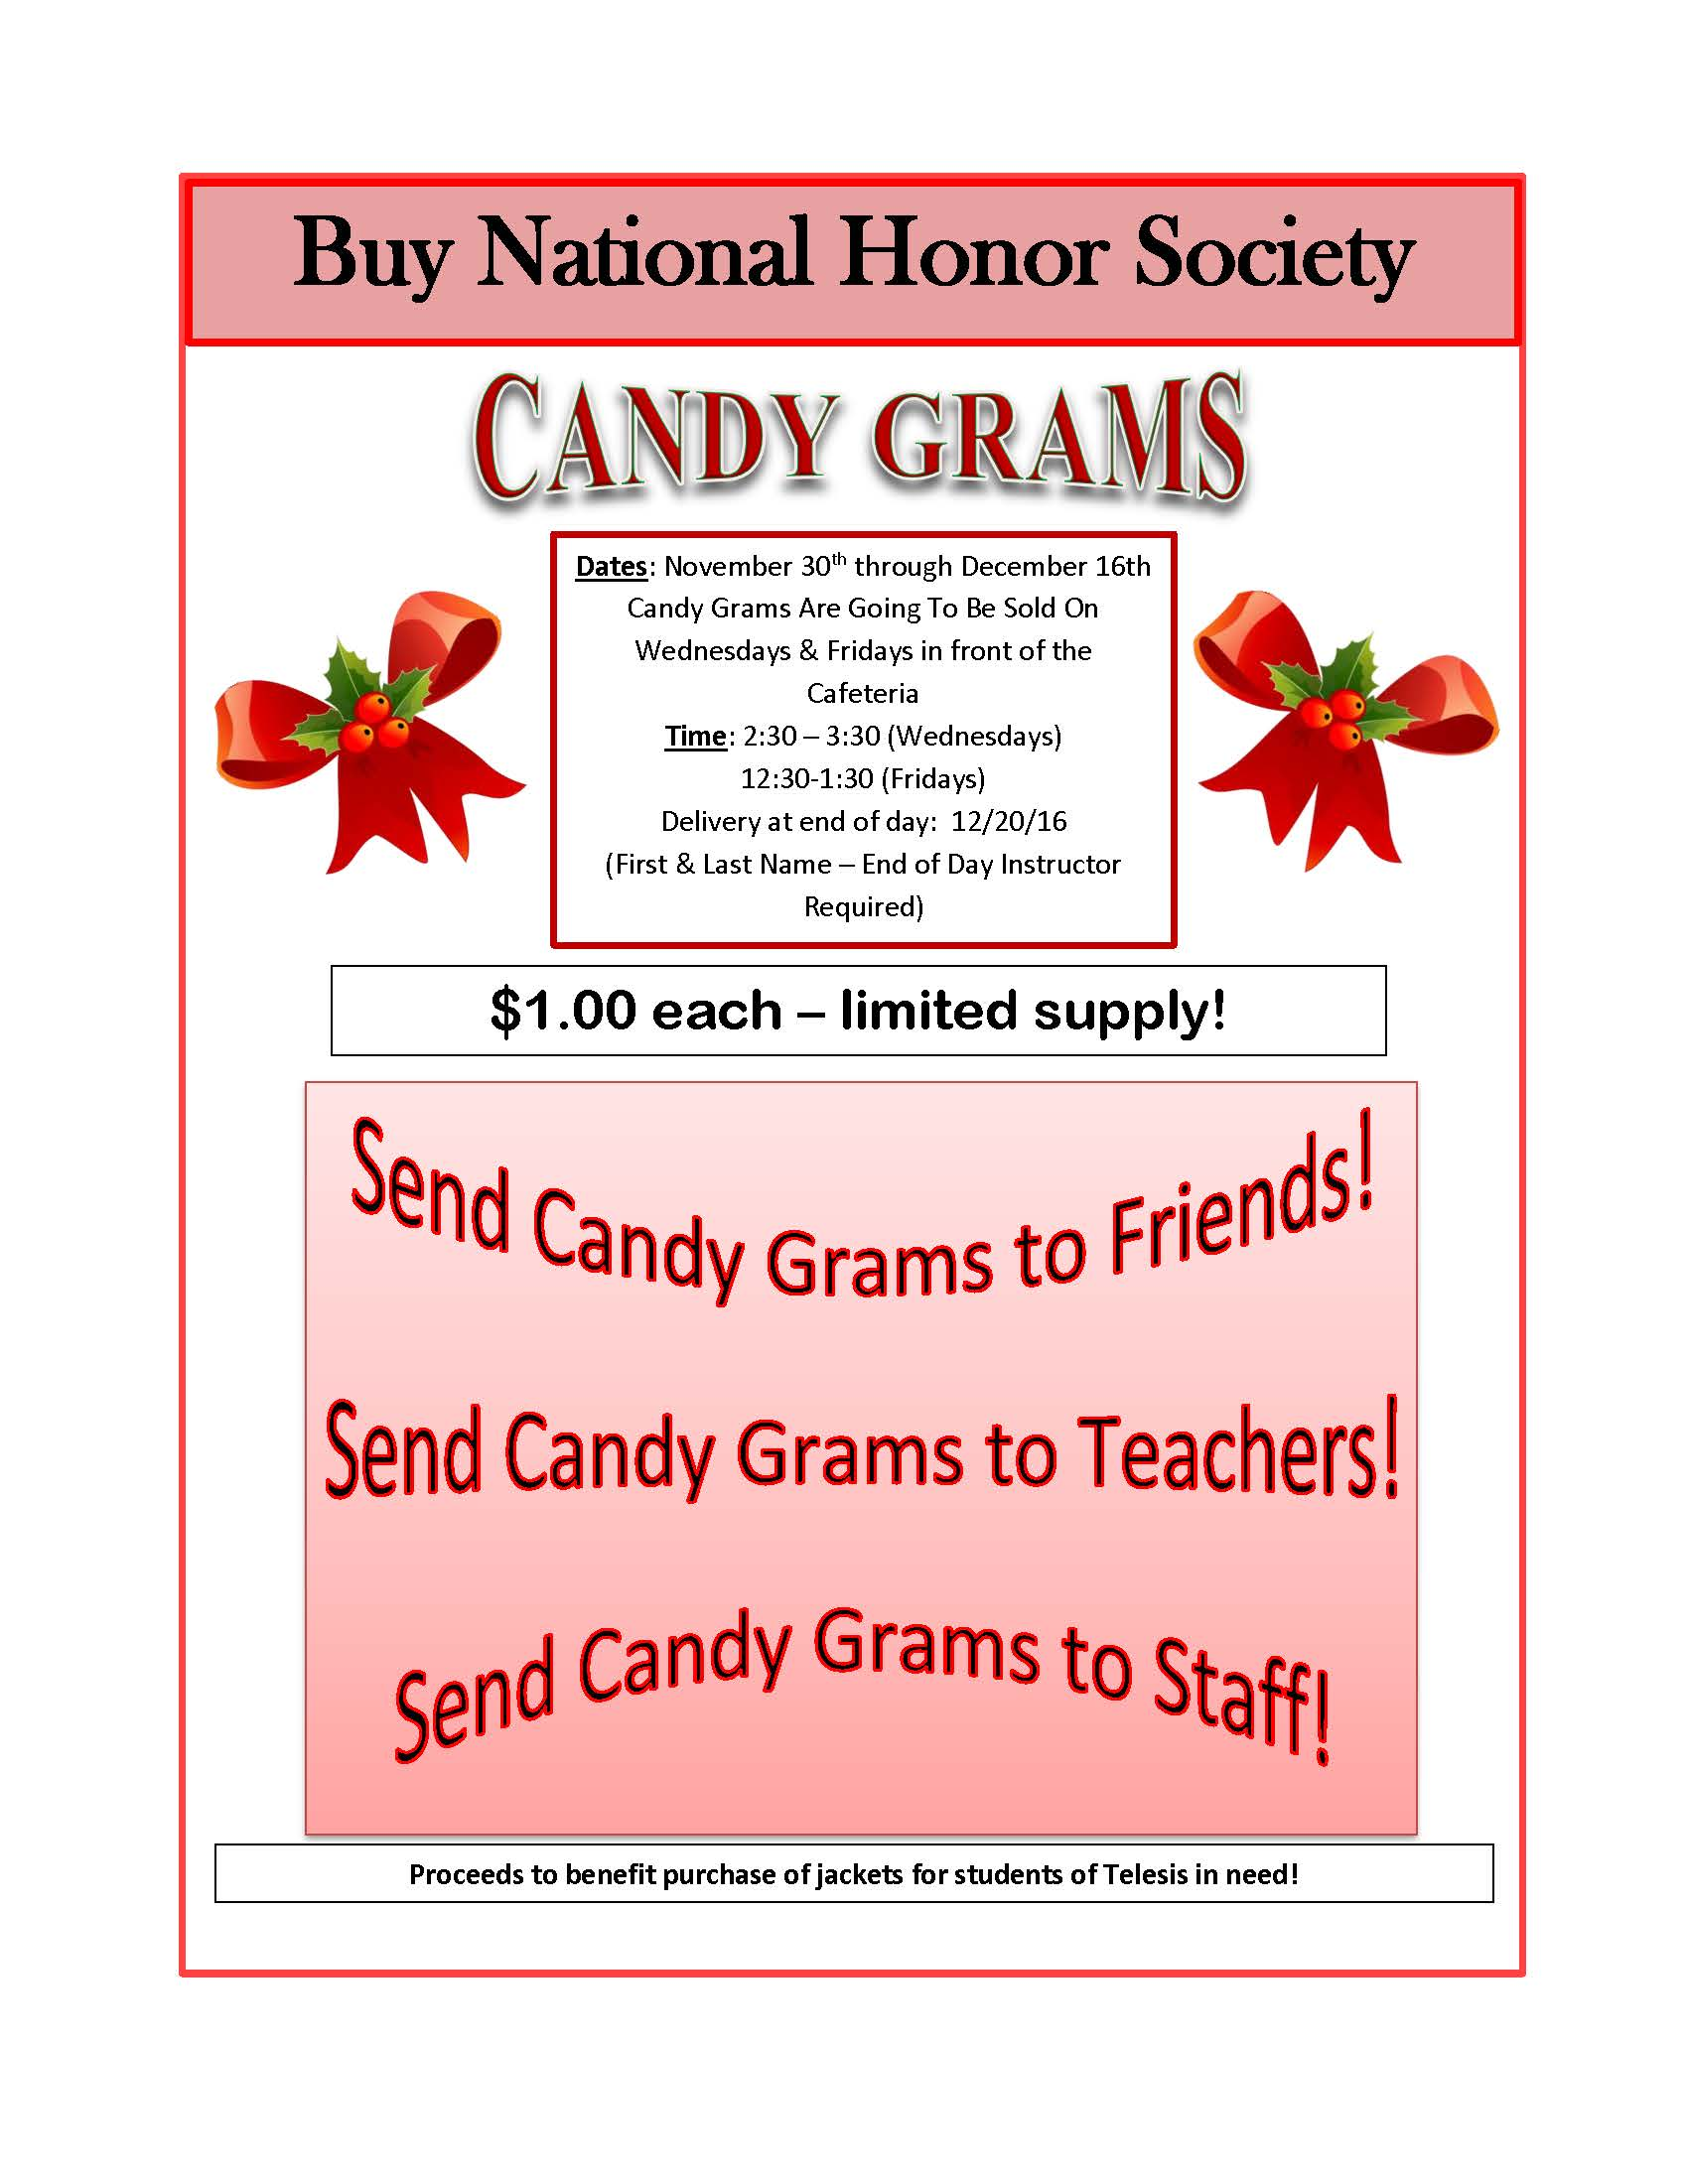 candy-grams-flyer-1